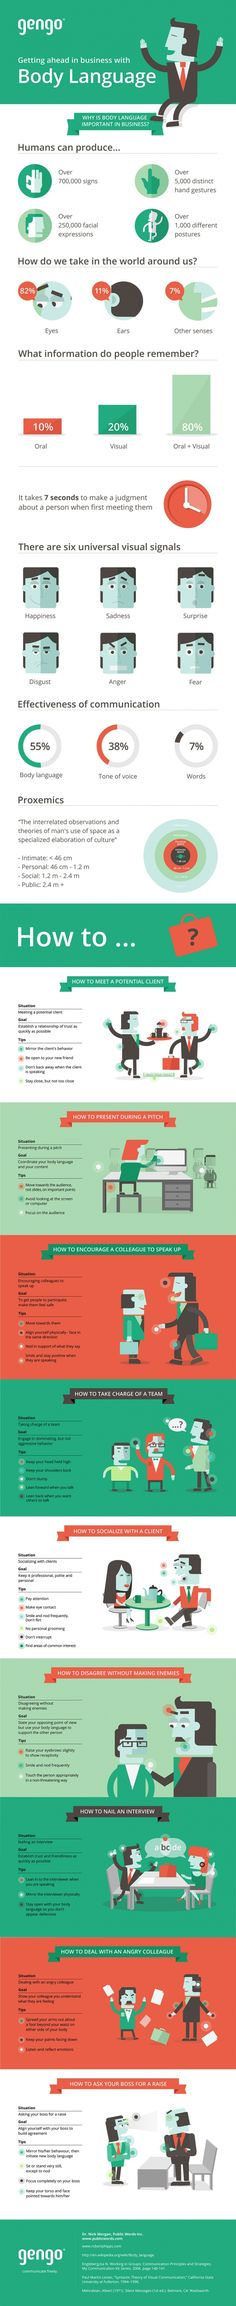 According to an infographic from Get In Front Communications - communication resume skills